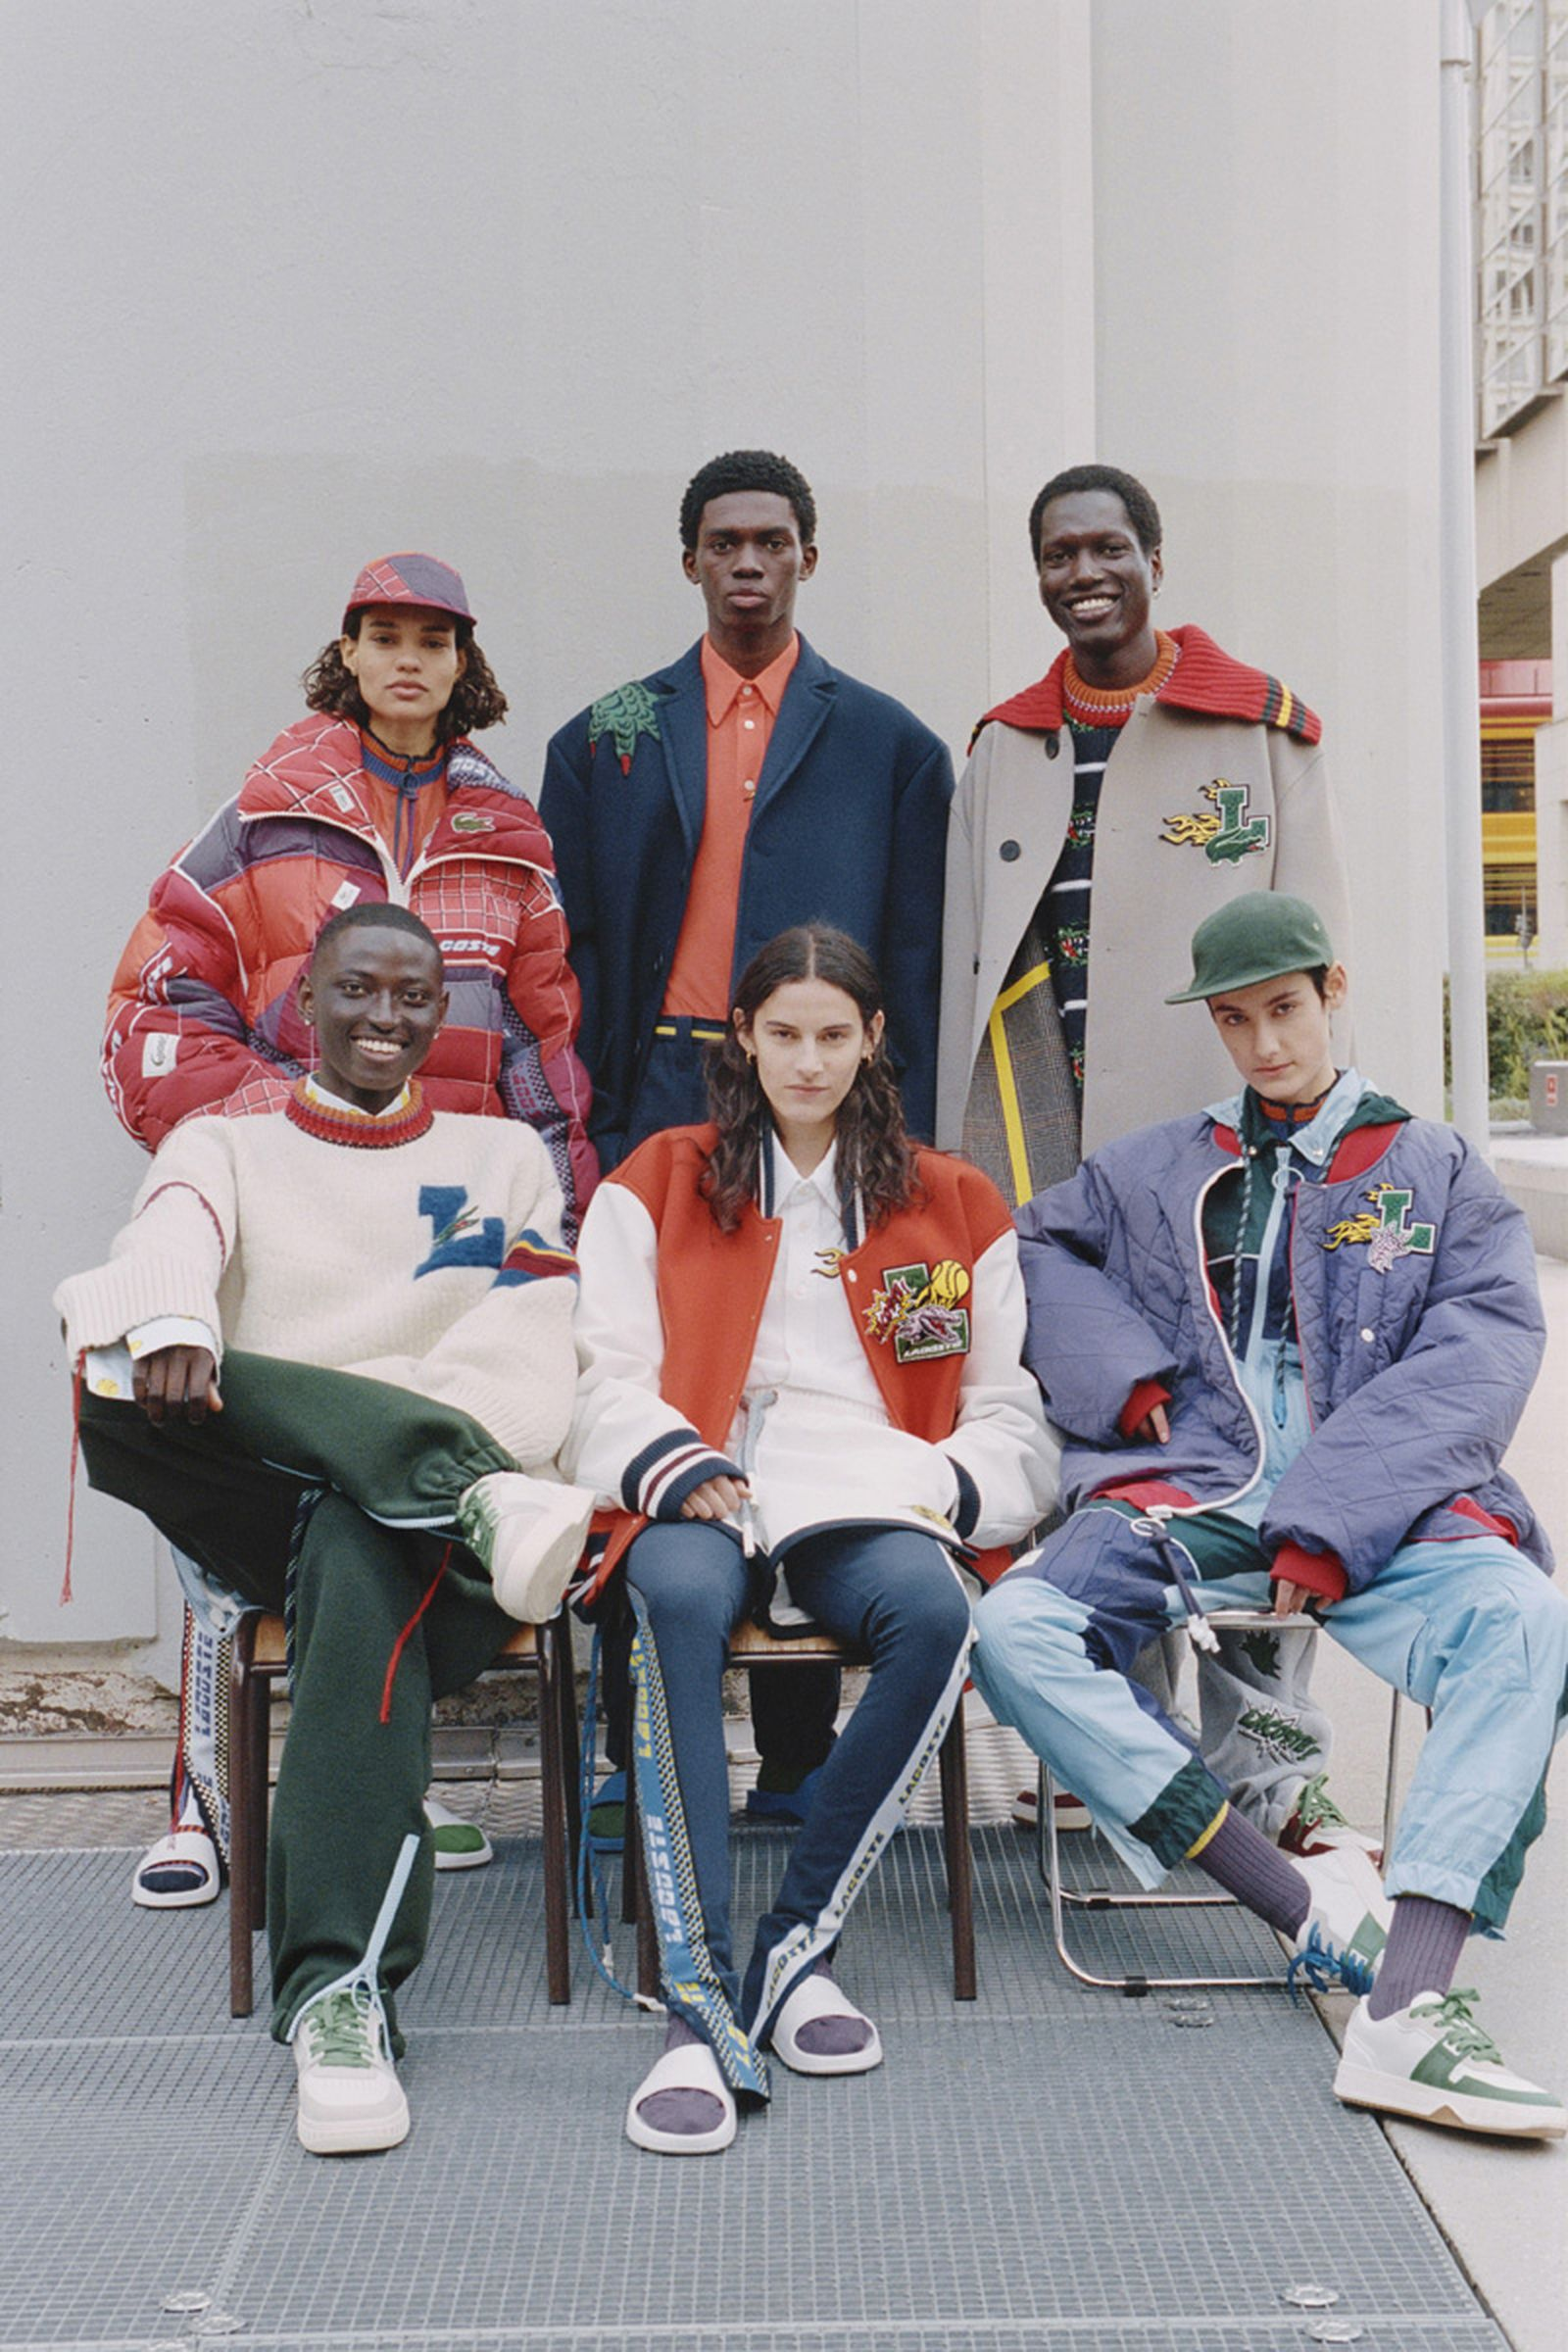 lacoste-fall-winter-2021-collection-lookbook-33